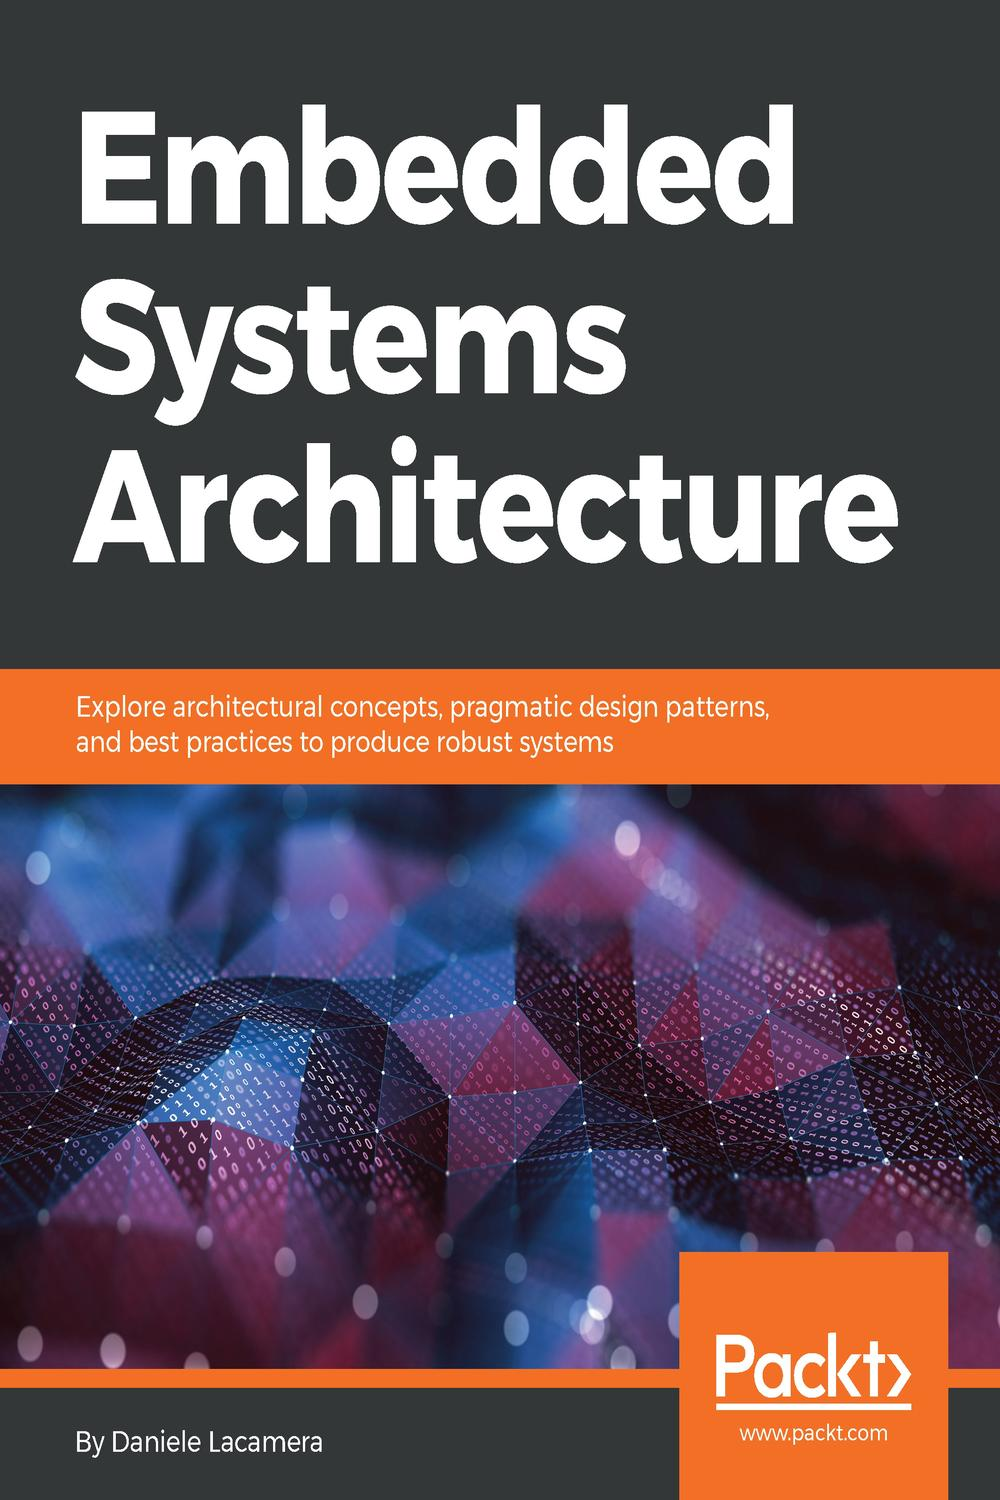 Embedded Systems Architecture by Daniele Lacamera   Read